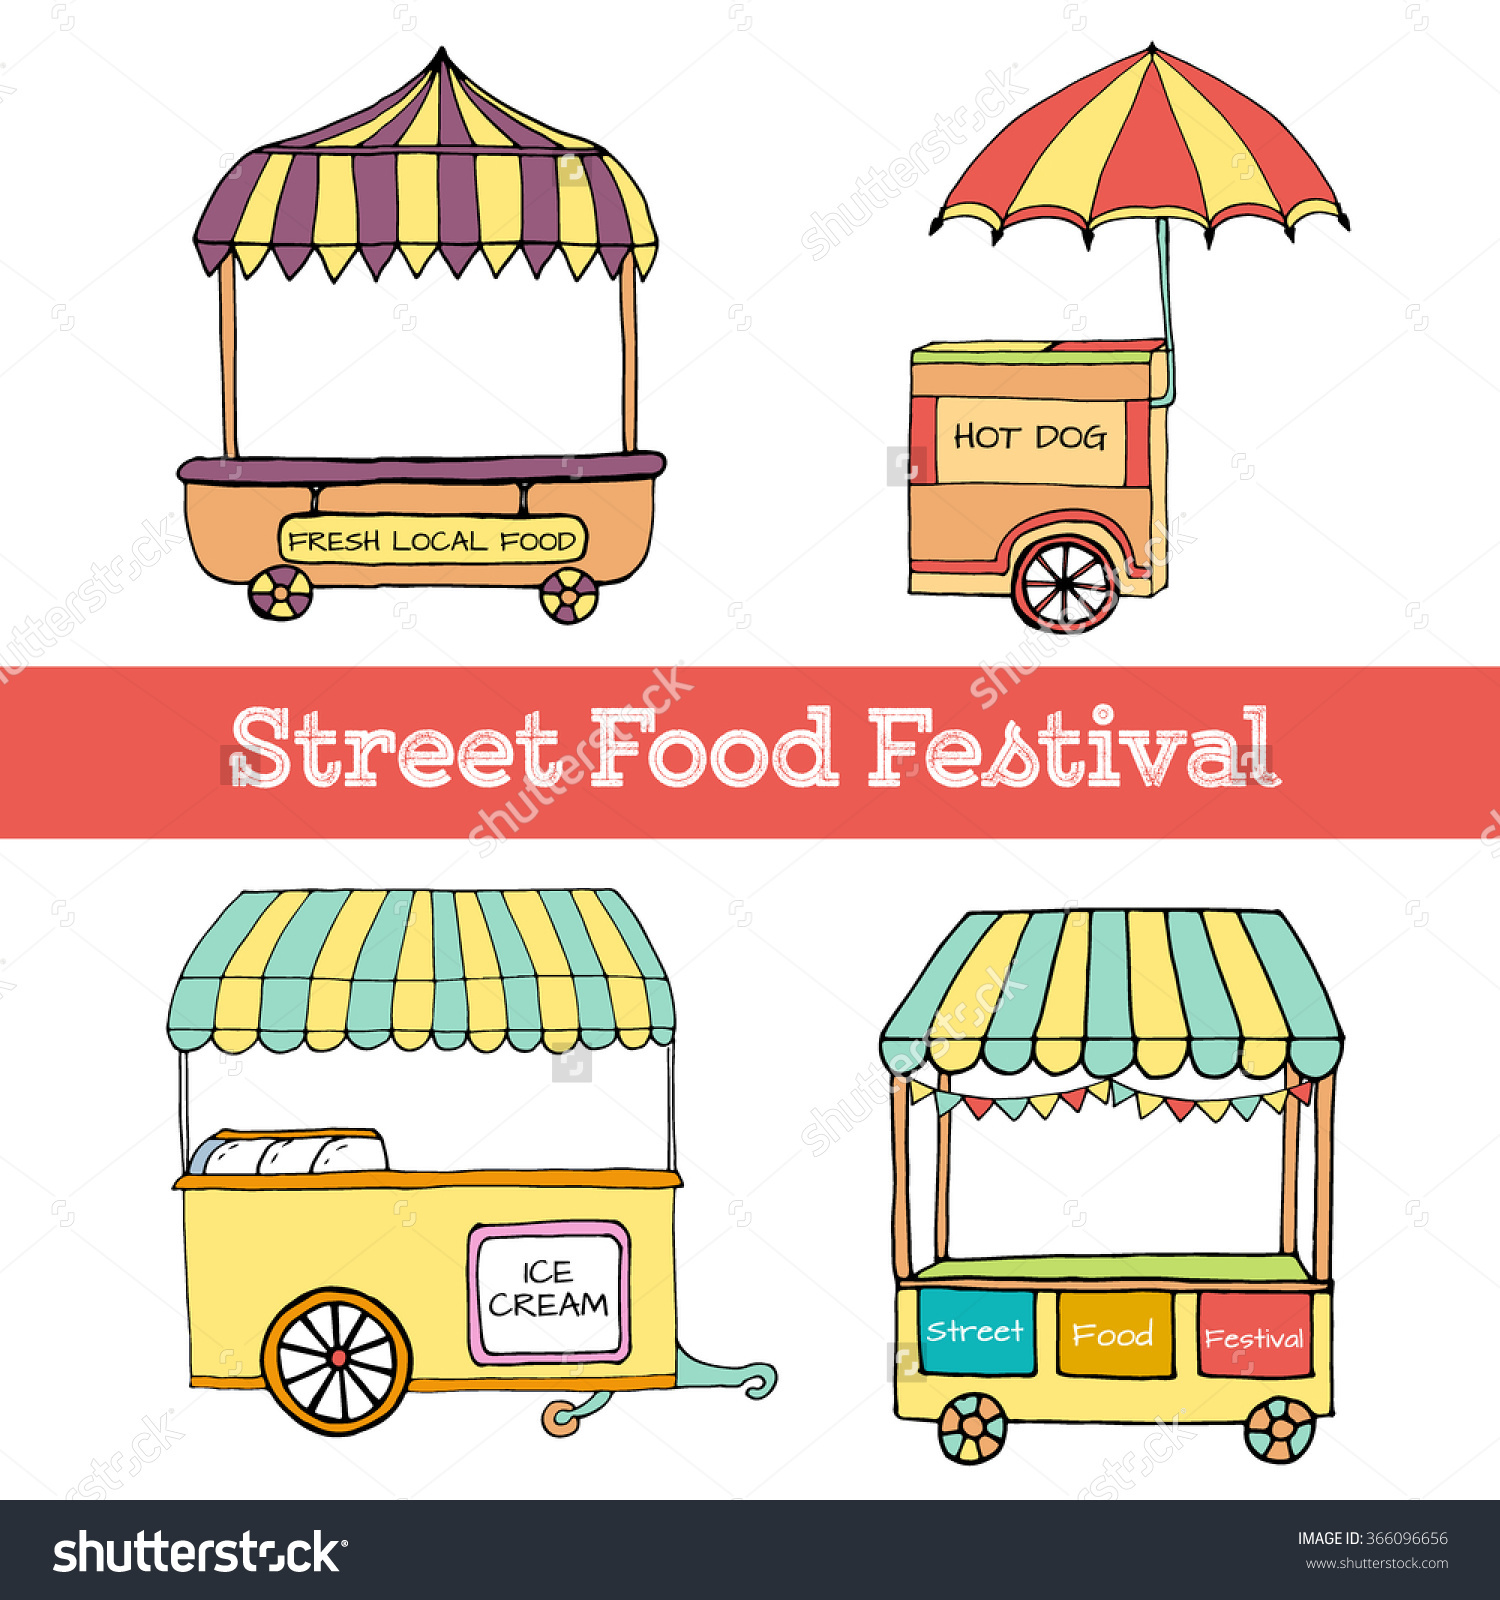 Hand Drawn Sketch Street Food Transport Stock Vector 366096656.